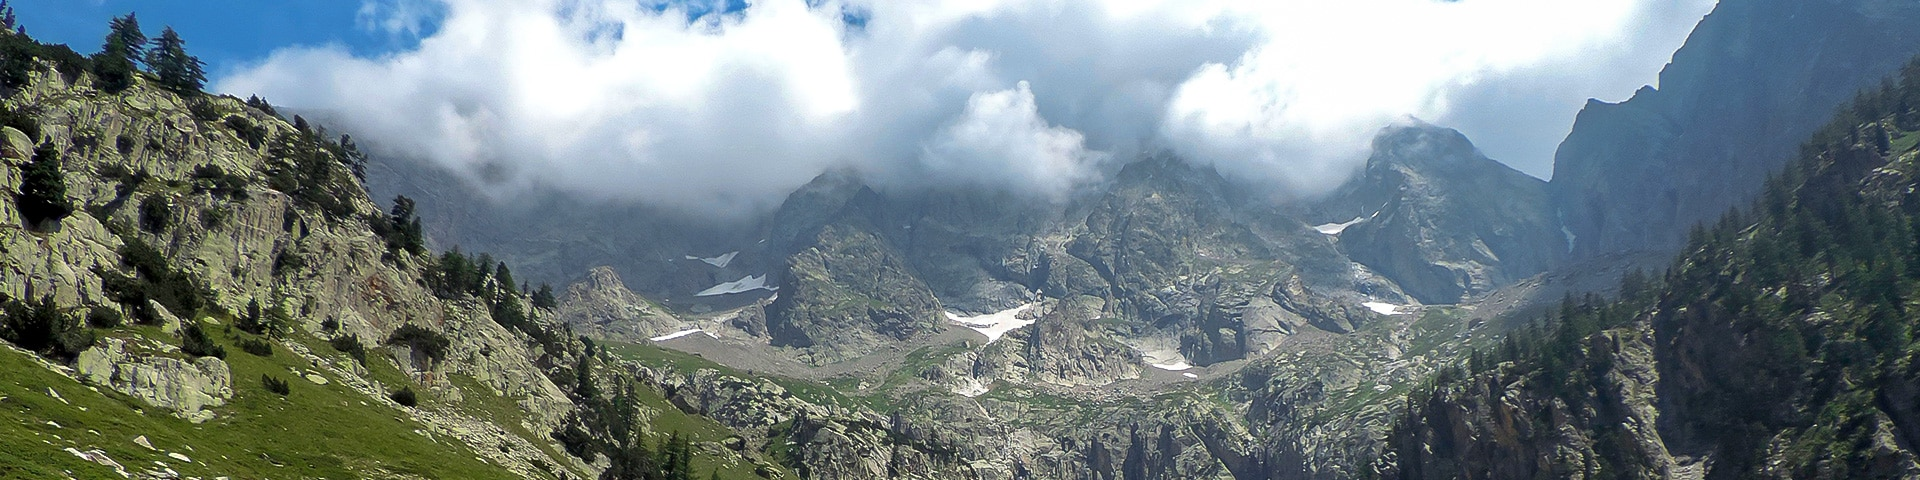 Panorama from the Vallone Argentera hike in Alpi Marittime National Park, Italy